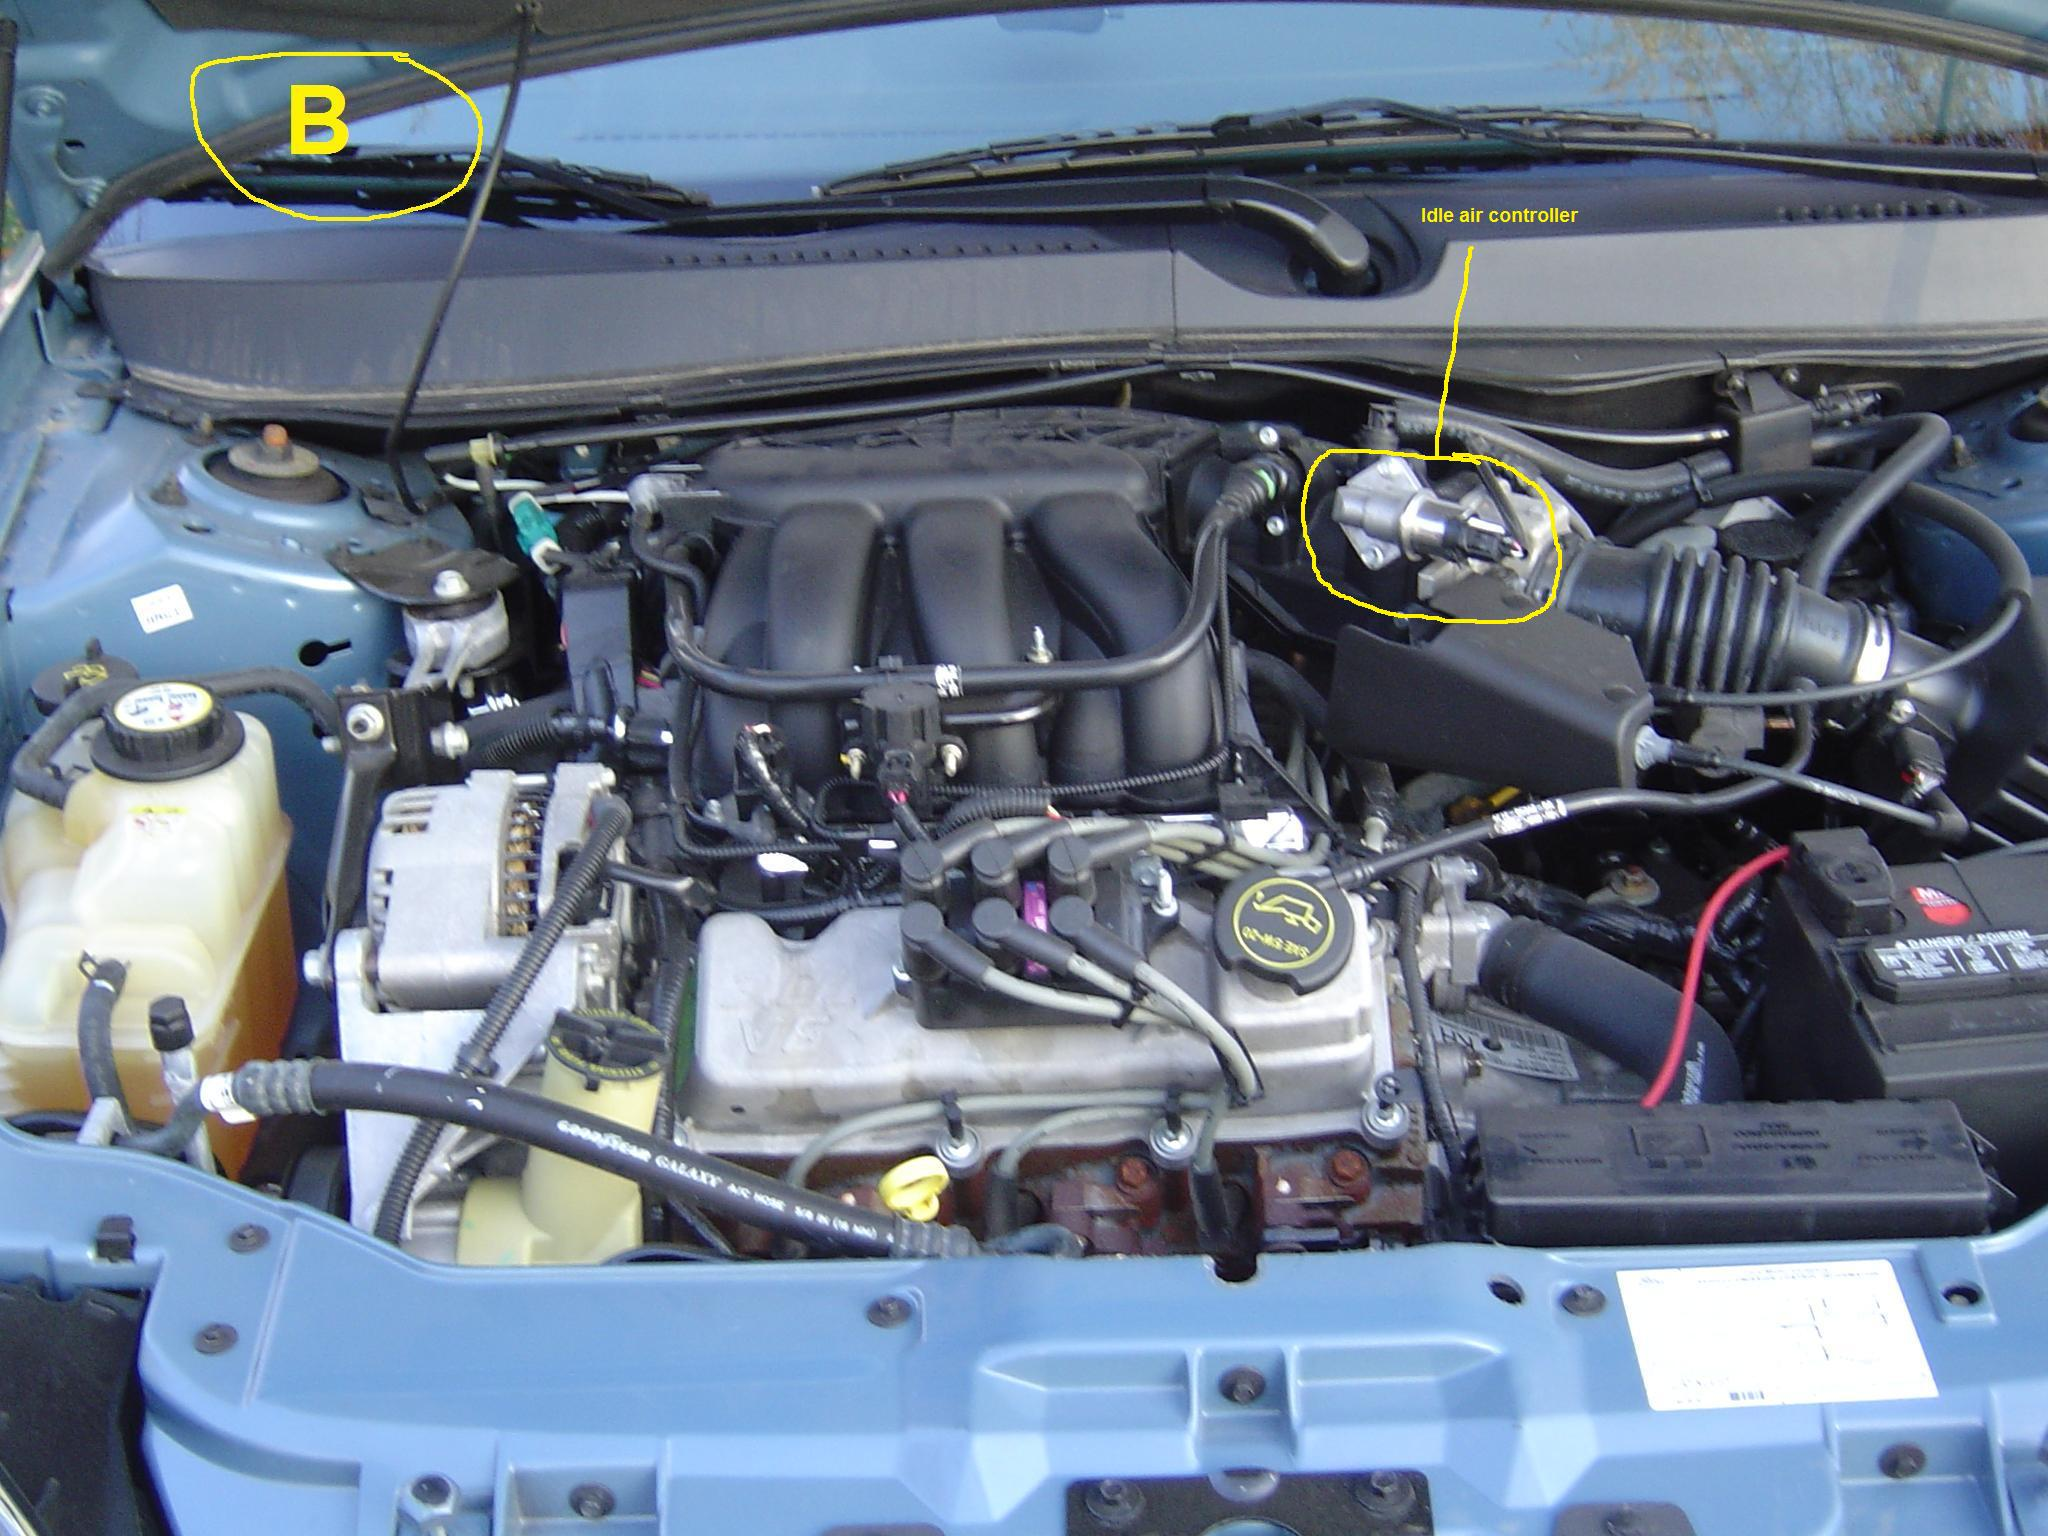 I have a 2003 Ford Taurus 6 cyl Flex Fuel engine Problem